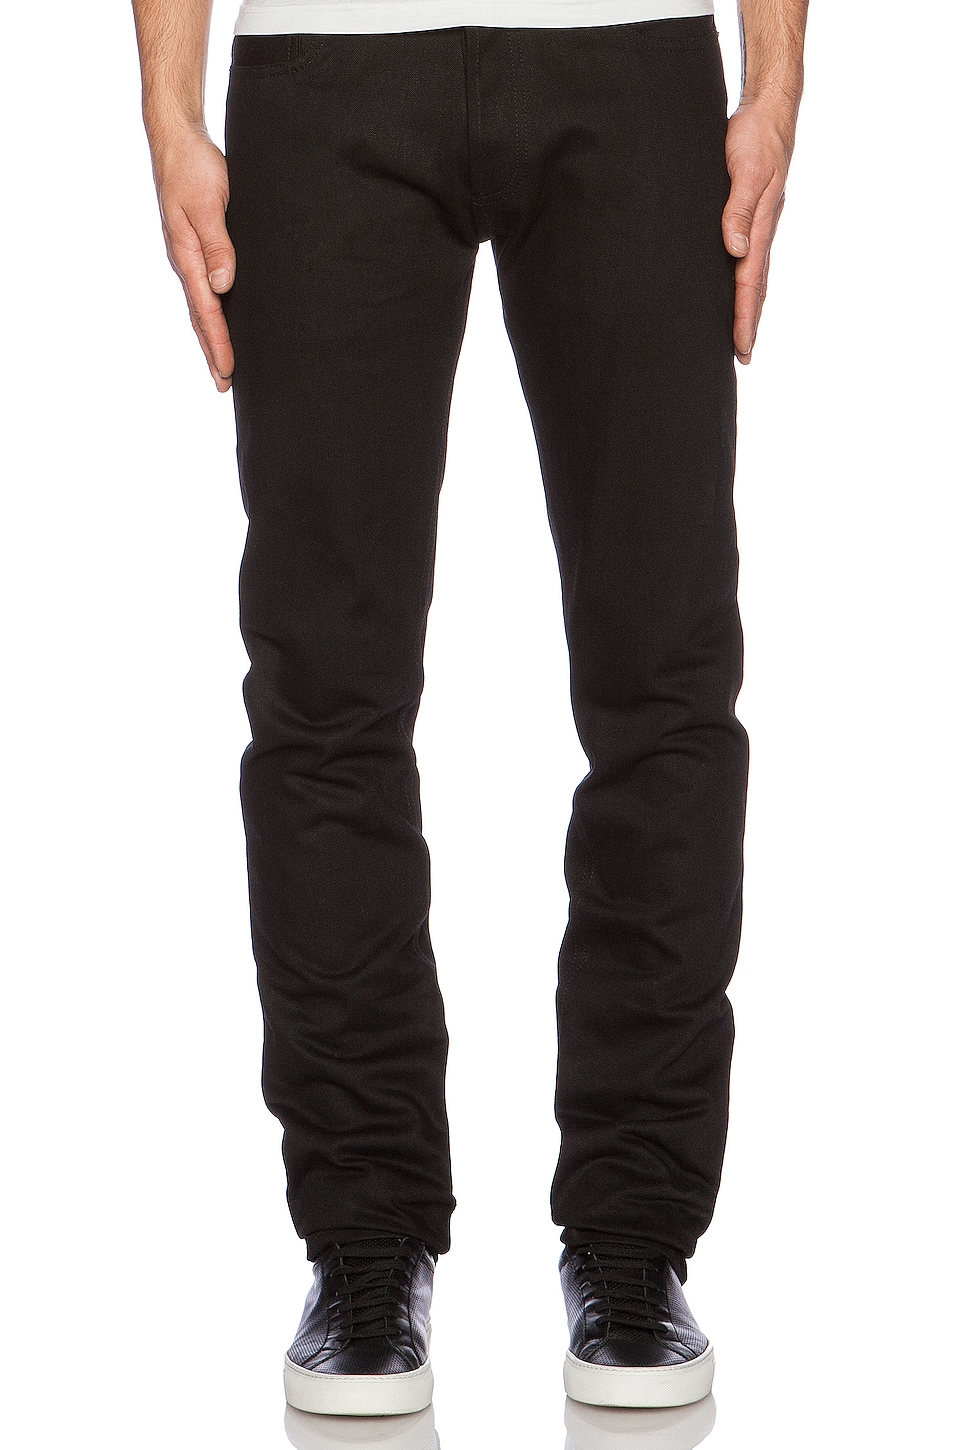 3sixteen Slim Tapered Denim in Double Black Selvedge